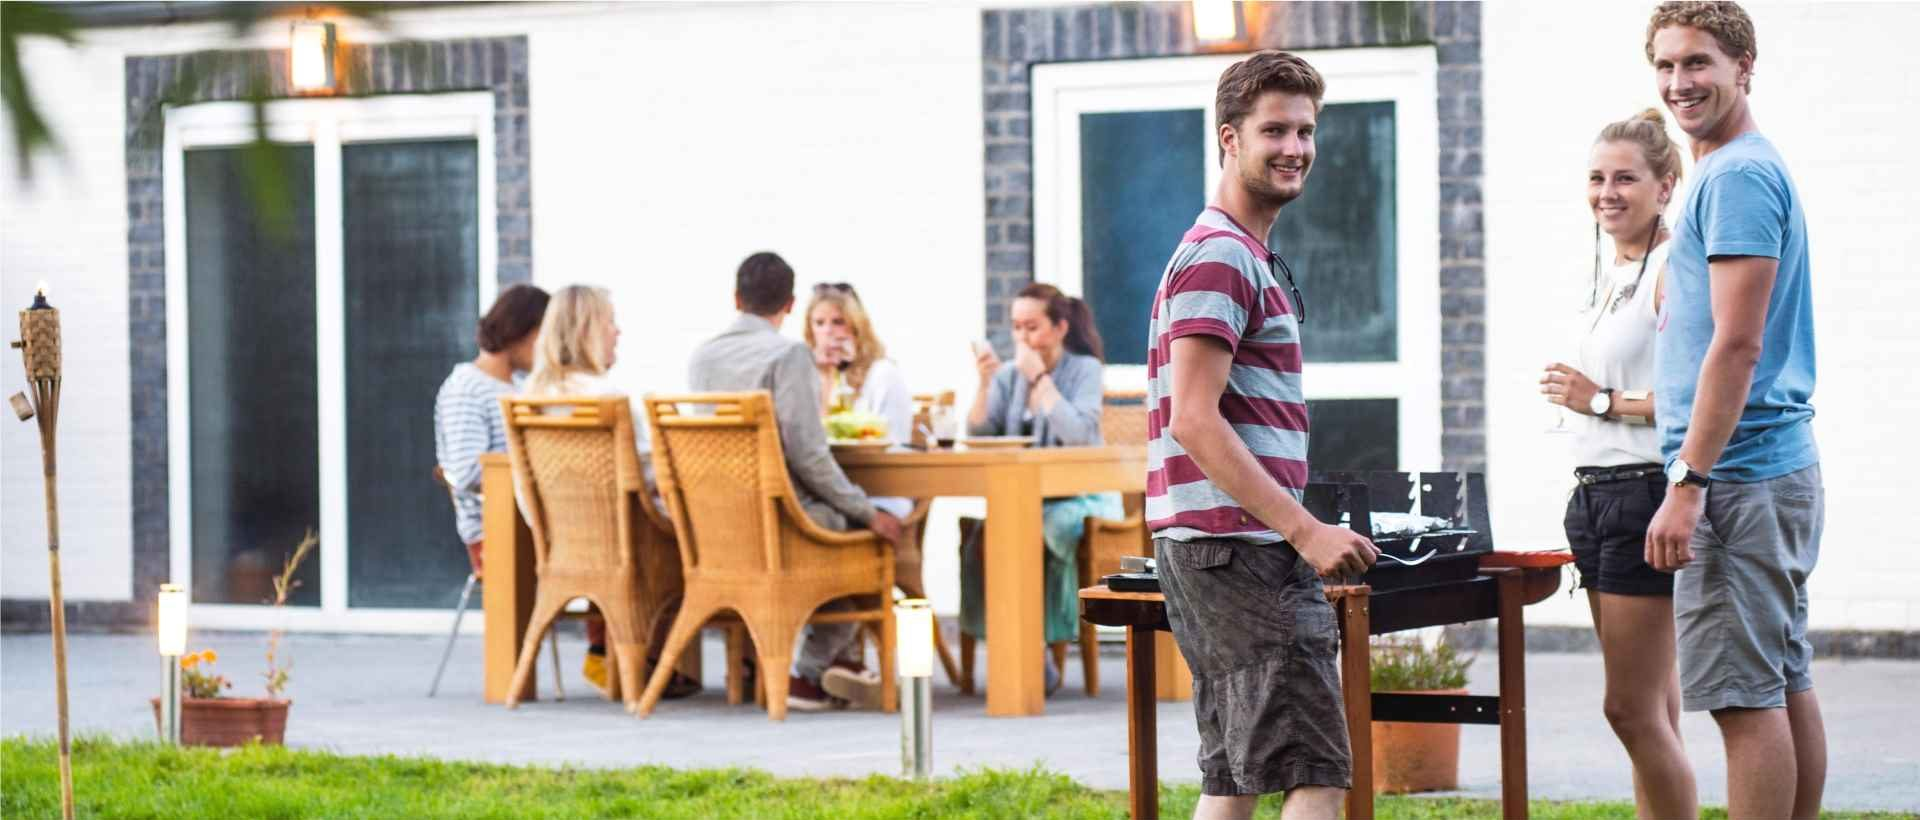 The terrace is a perfect place for parties with family and friends.